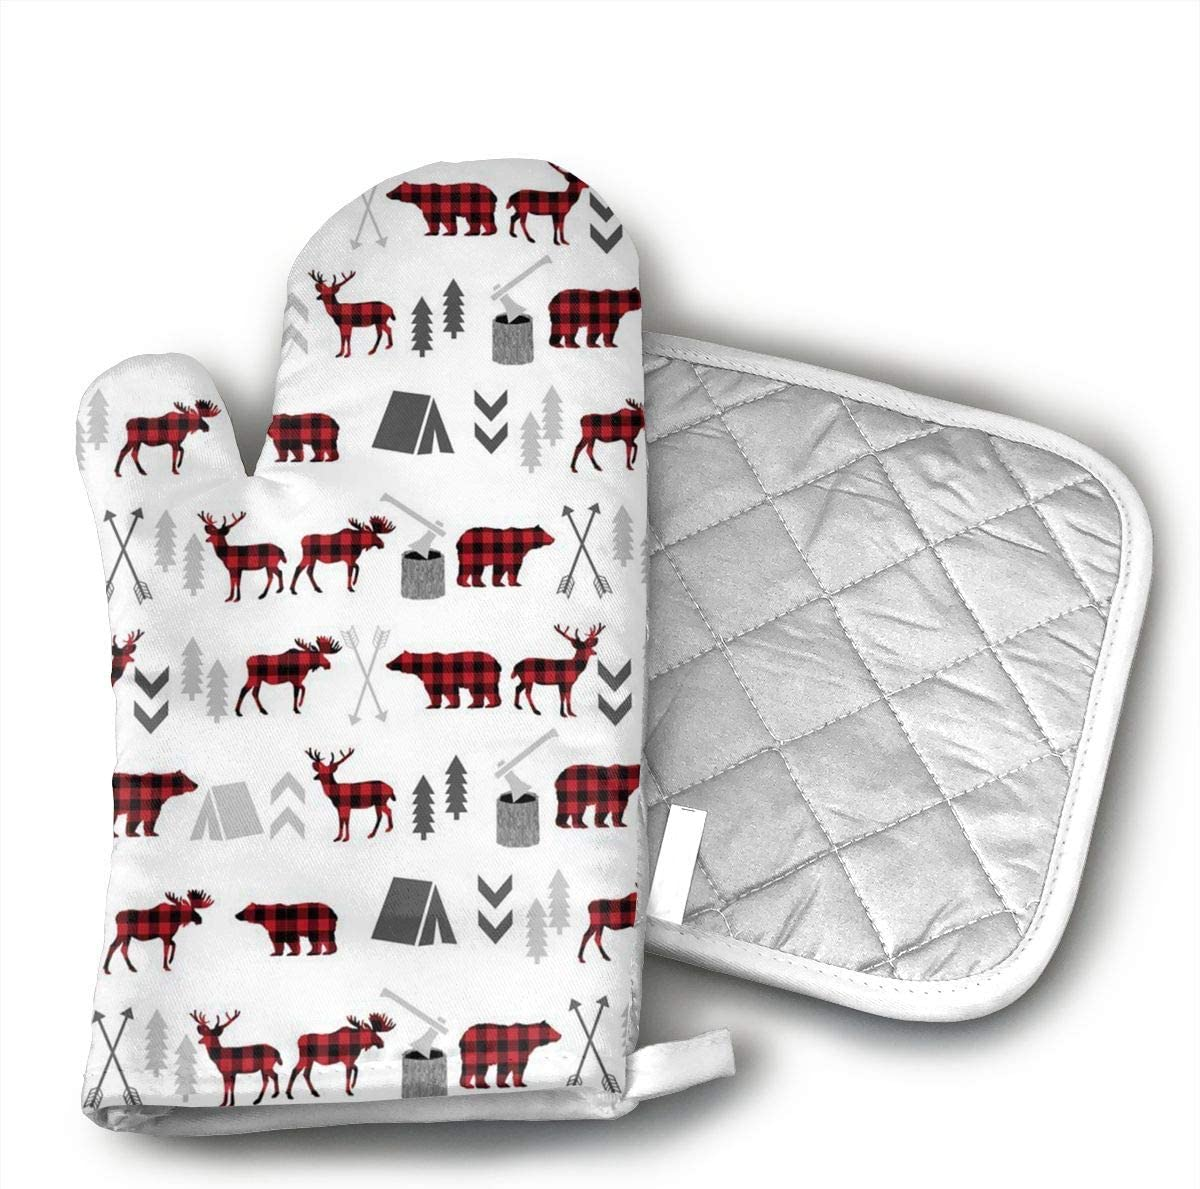 InsulatedMitt59 Buffalo Plaid Woodland Moose Deer Bear Forest Oven Mitts, Non-Slip Silicone Oven Mitts, Extra Long Kitchen Mitts, Heat Resistant to 572¡ãF Kitchen Oven Gloves